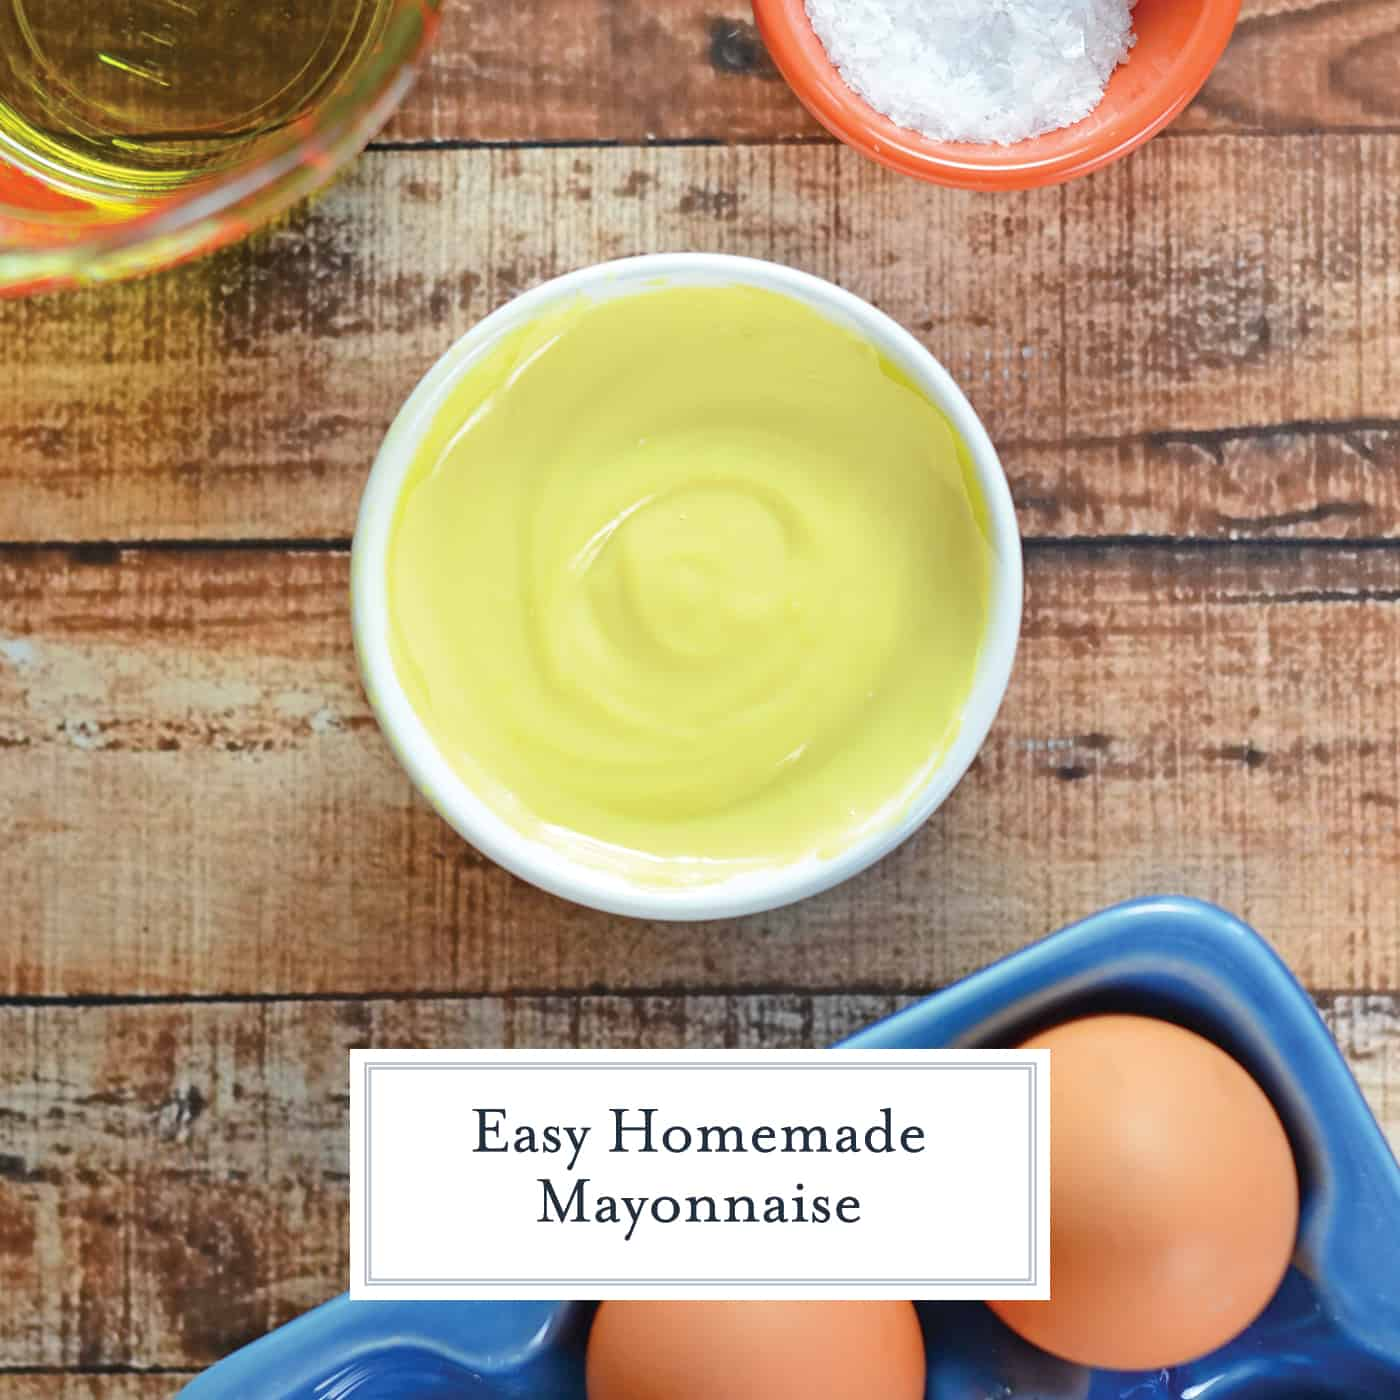 Do you know how easy it is to make homemade mayonnaise? SO EASY! Make my blender mayonnaise with 3 ingredients and 3 minutes today! #homemademayonnaise #blendermayonnause #howtomakemayonnaise www.savoryexperiments.com